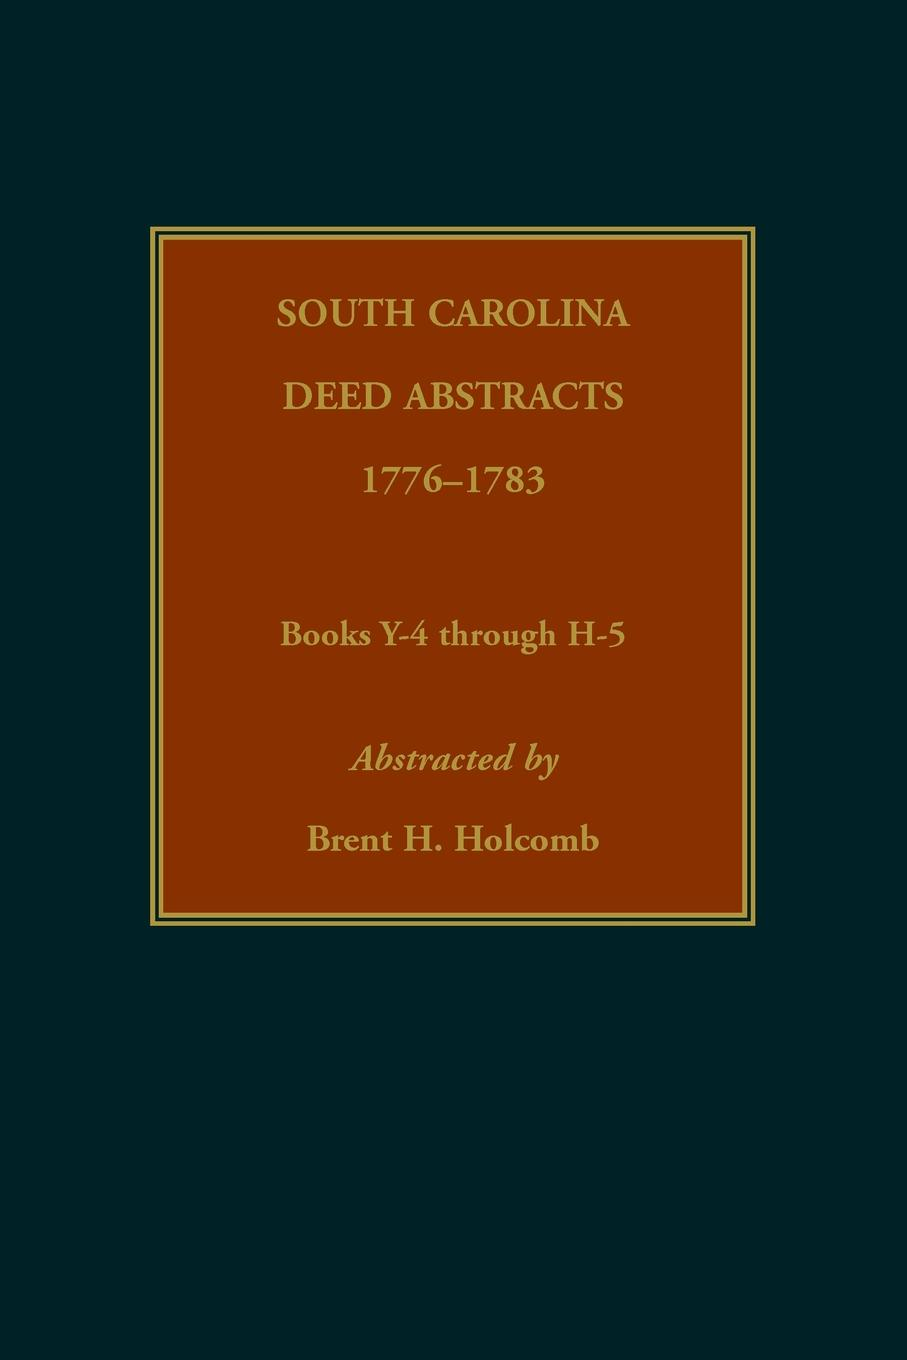 Brent Holcomb South Carolina Deed Abstracts, 1776-1783, Books Y-4 through H-5 north carolina dept of conservation and development the new north carolina in the advancing south